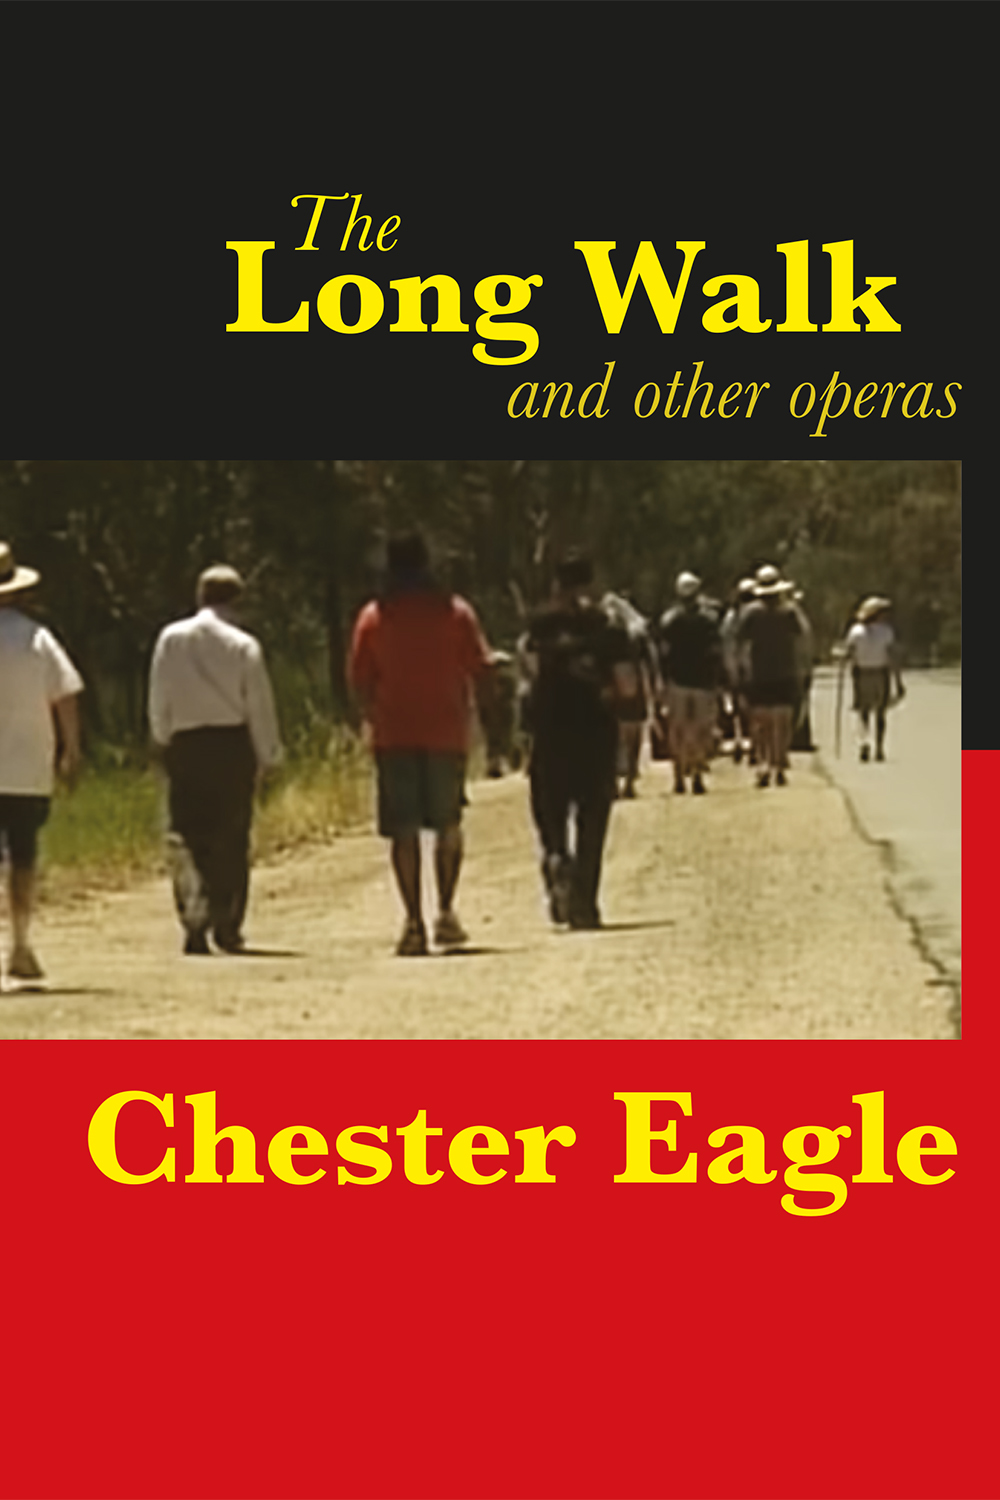 The-Long-Walk-cover-02